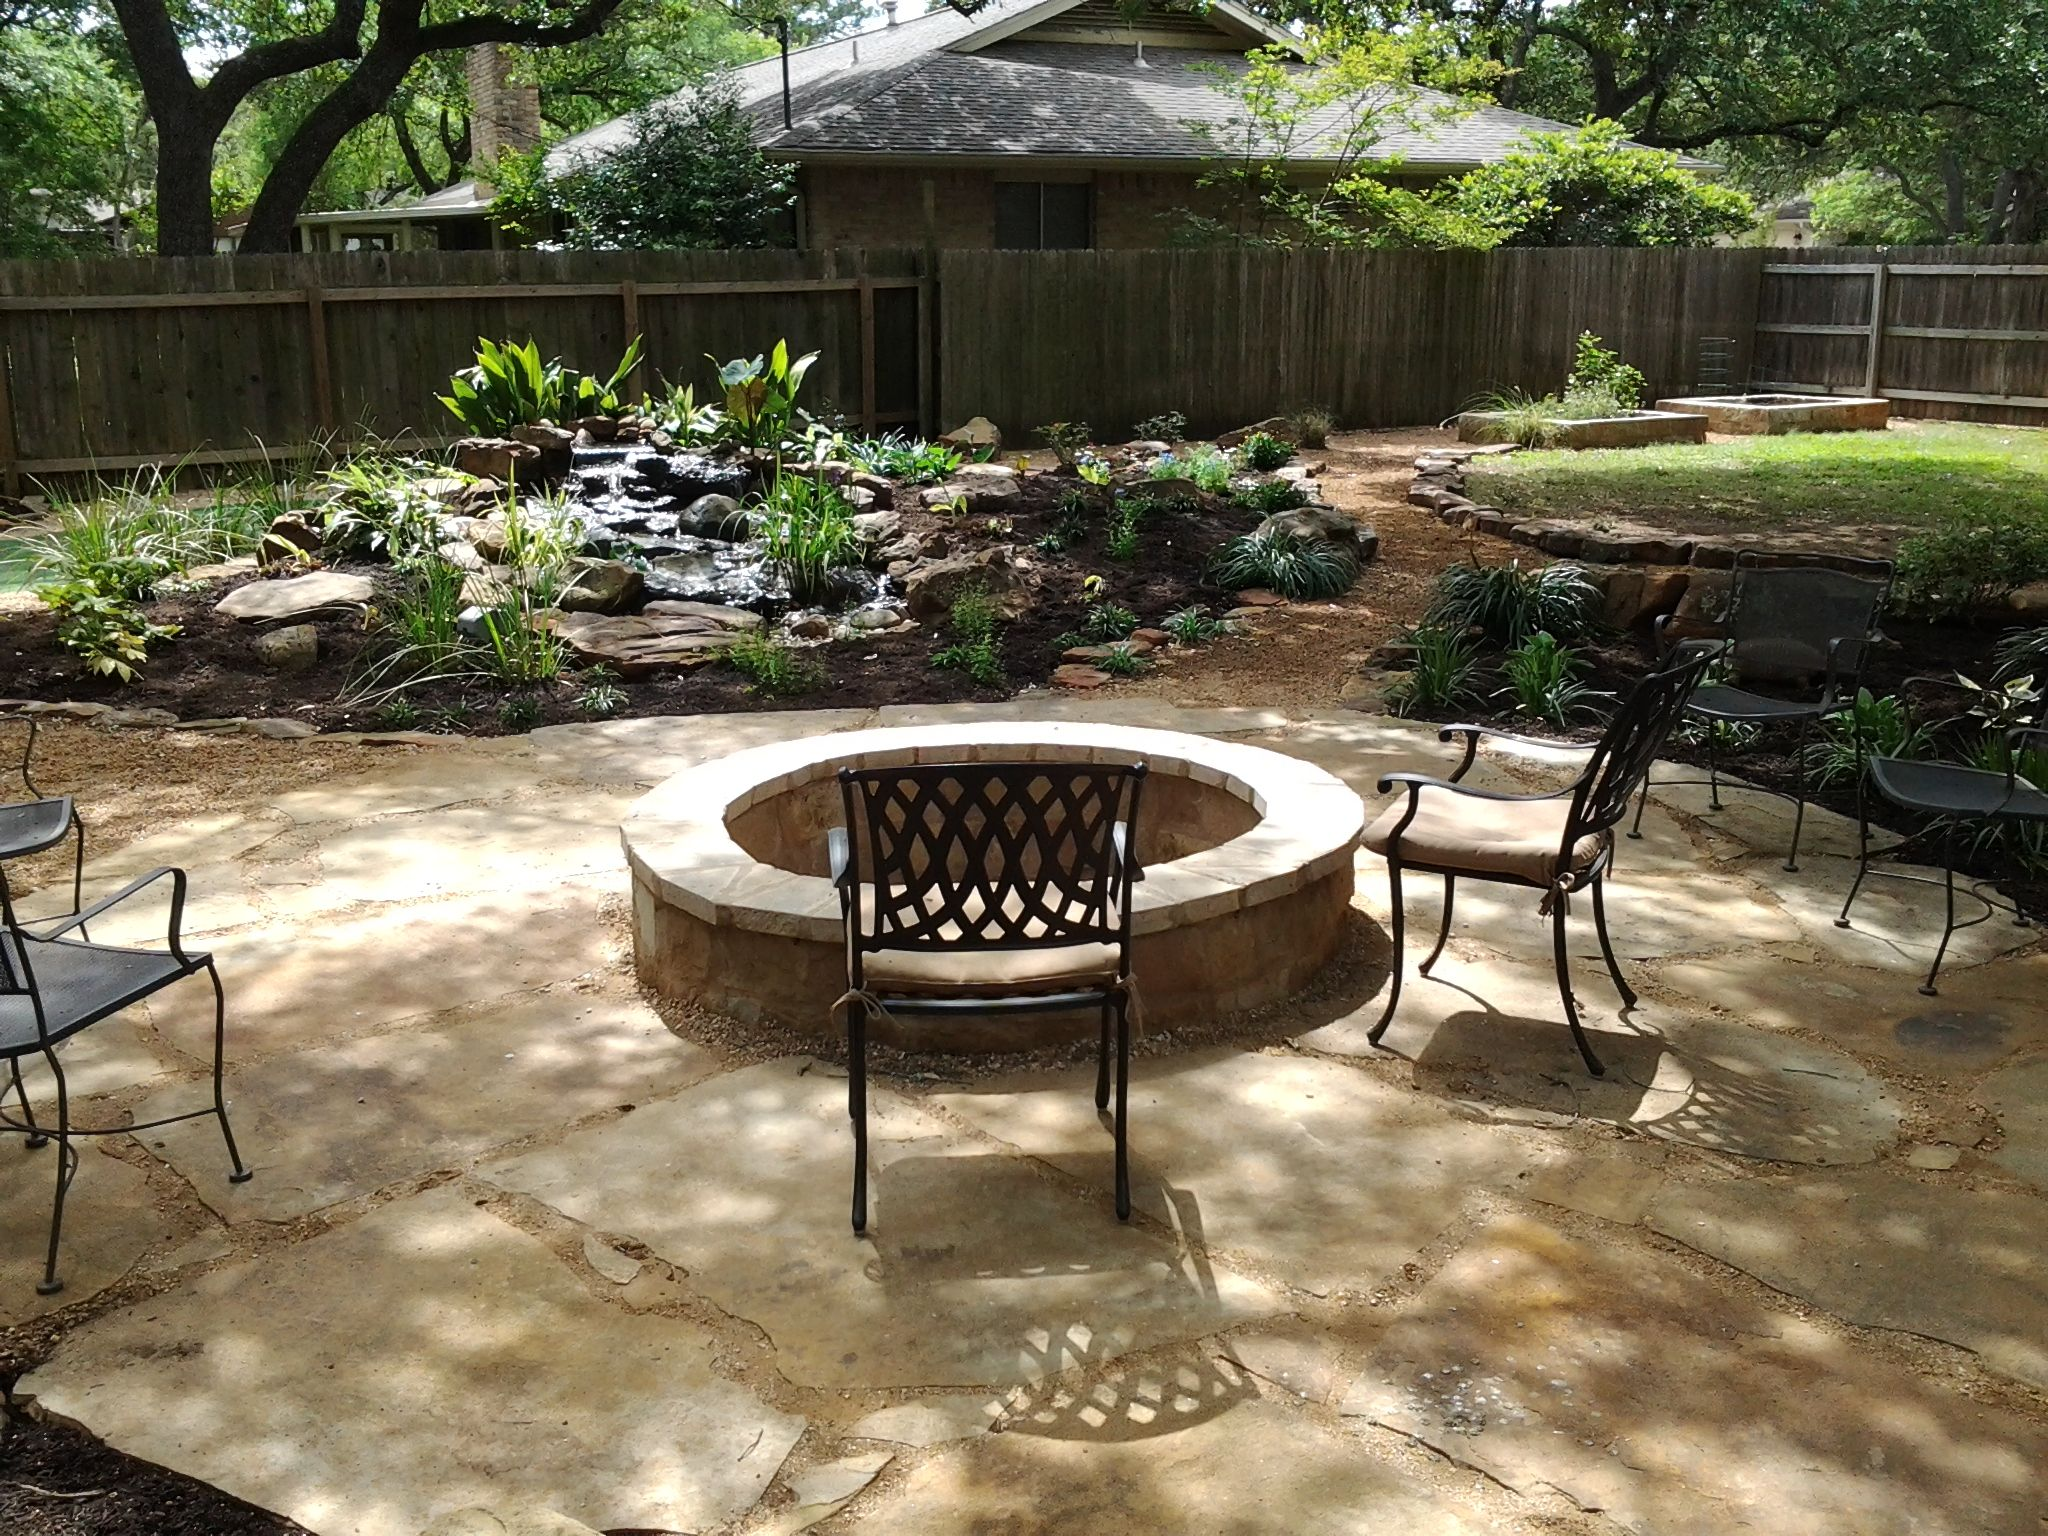 Oklahoma flagstone patio set in decomposed granite with ... on Decomposed Granite Backyard Ideas id=49129